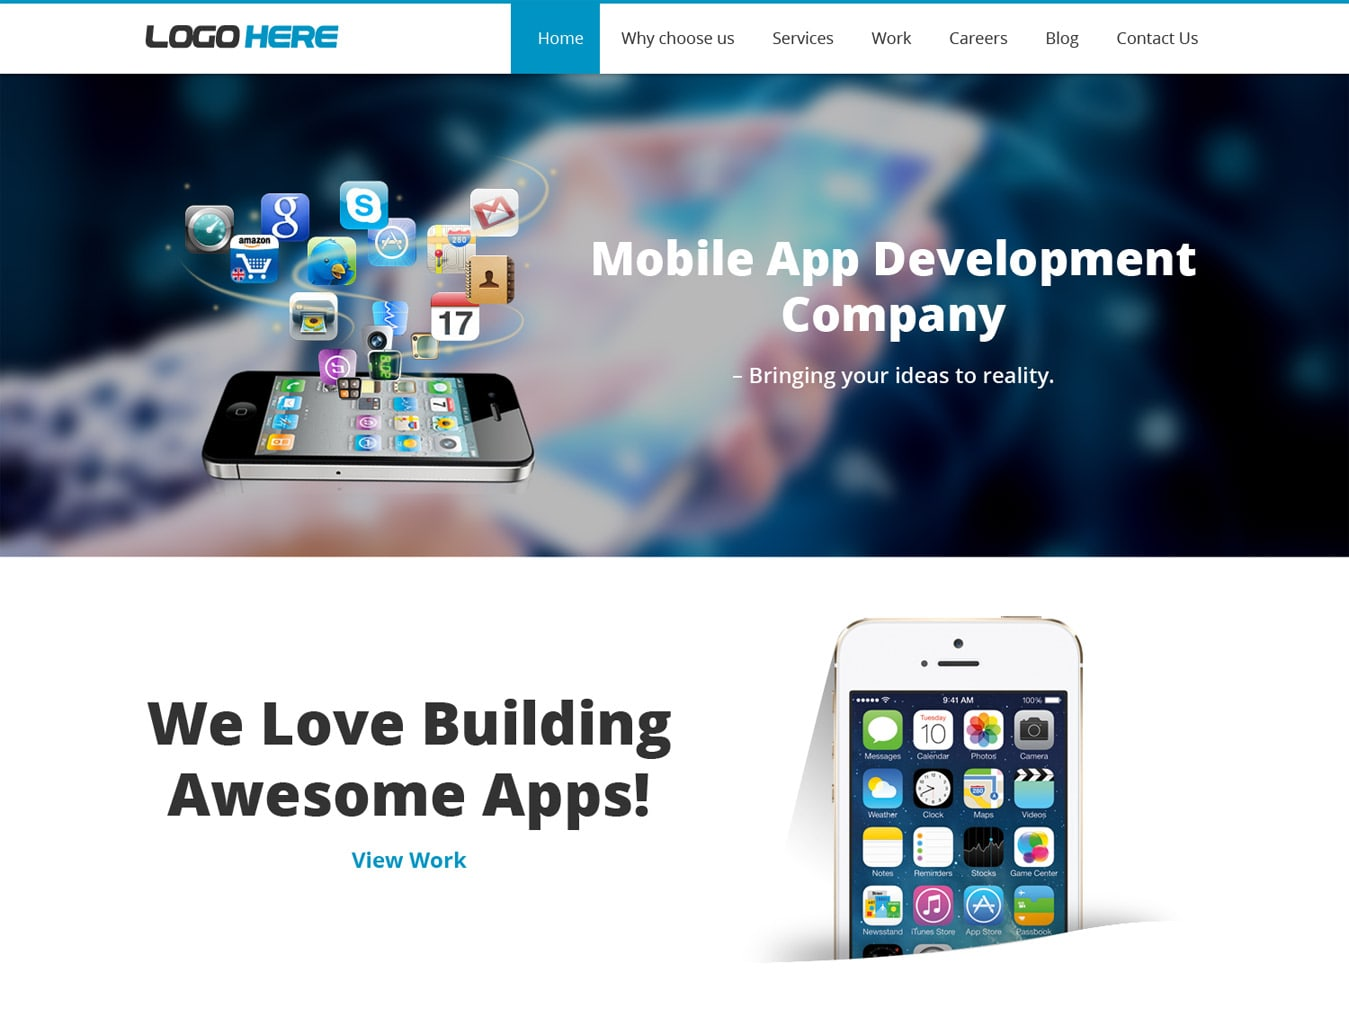 Mobile app development company website template